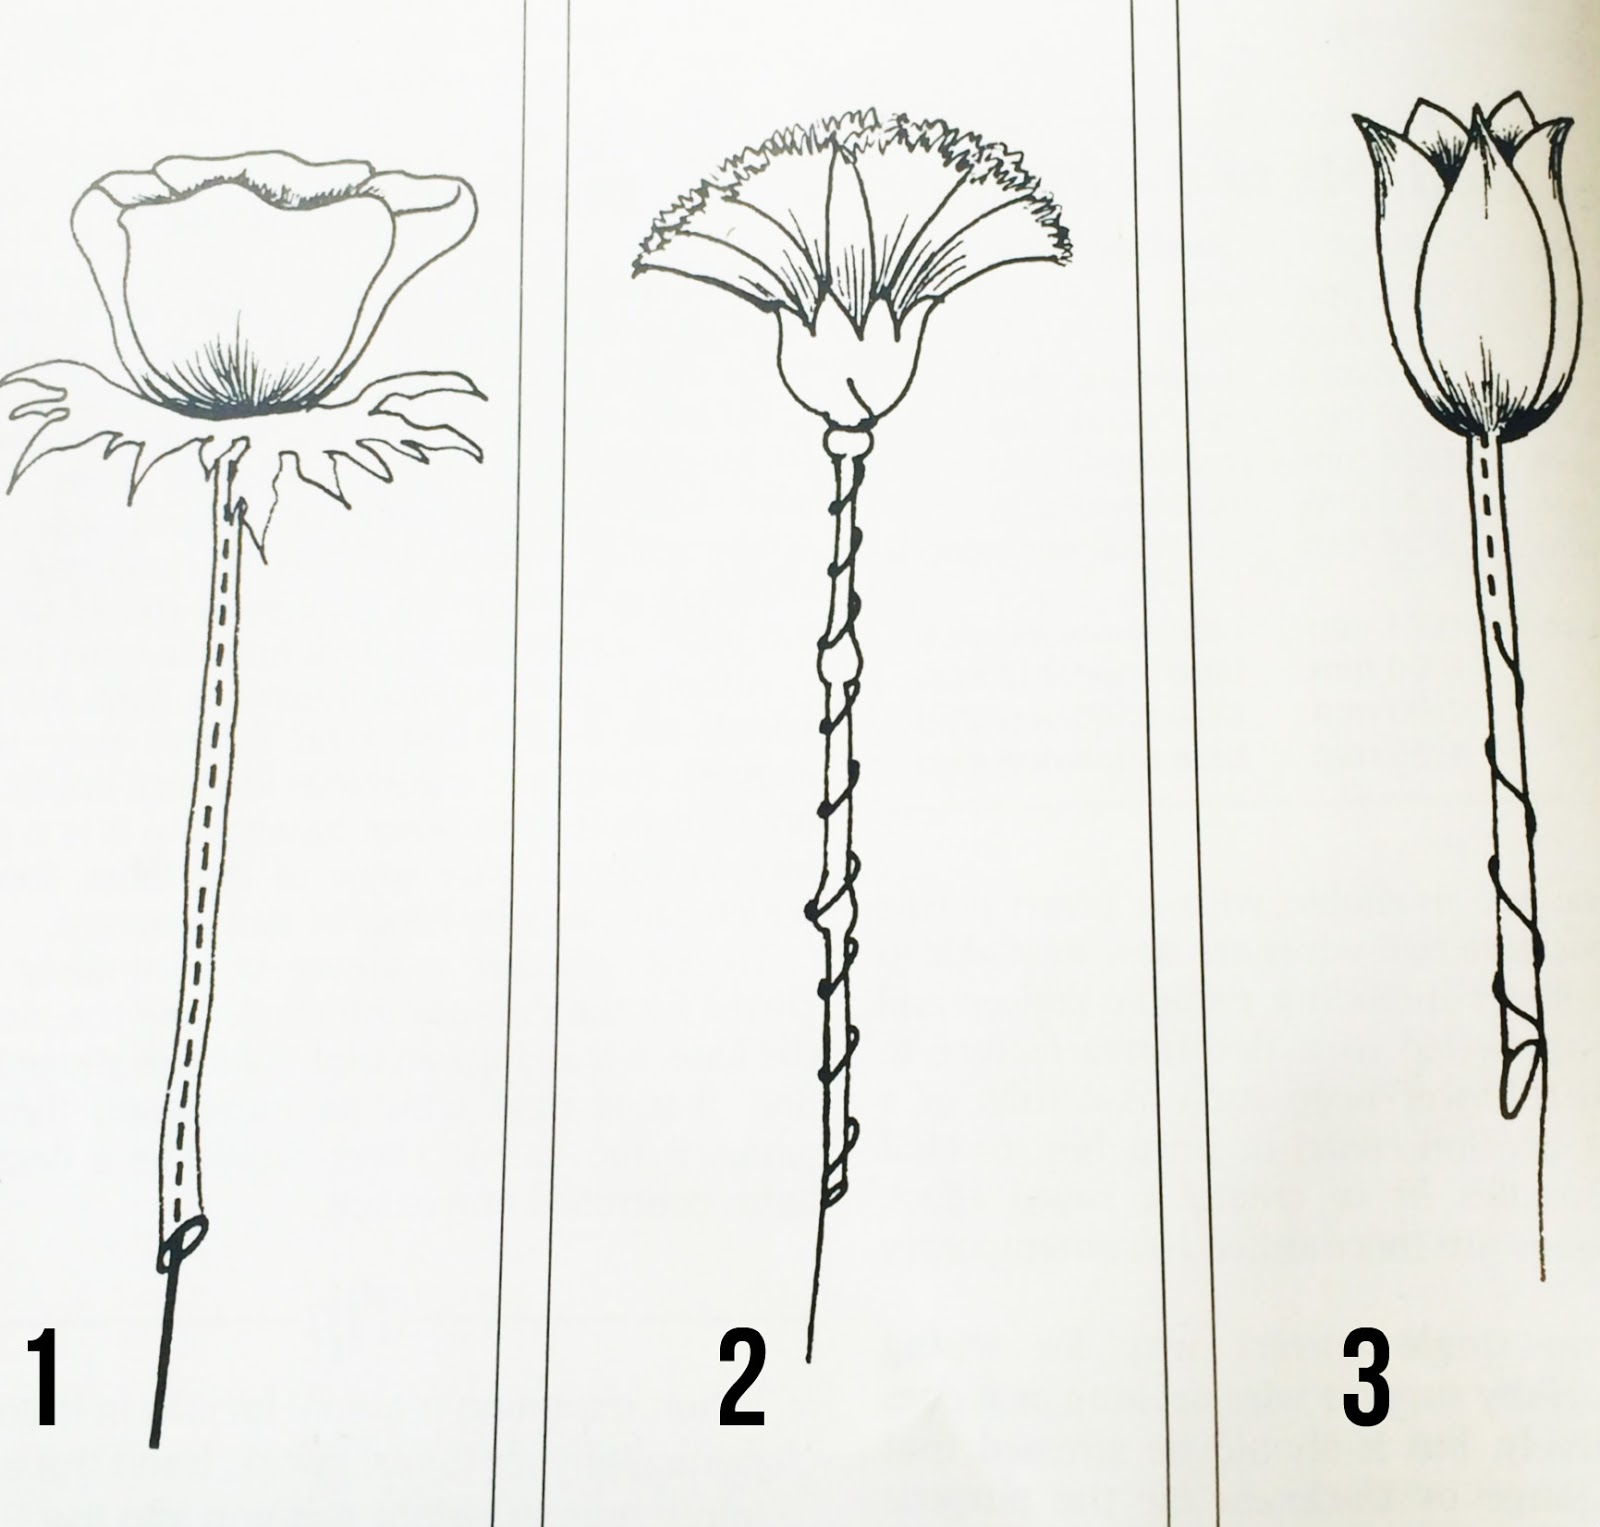 stitch method of wiring flowers